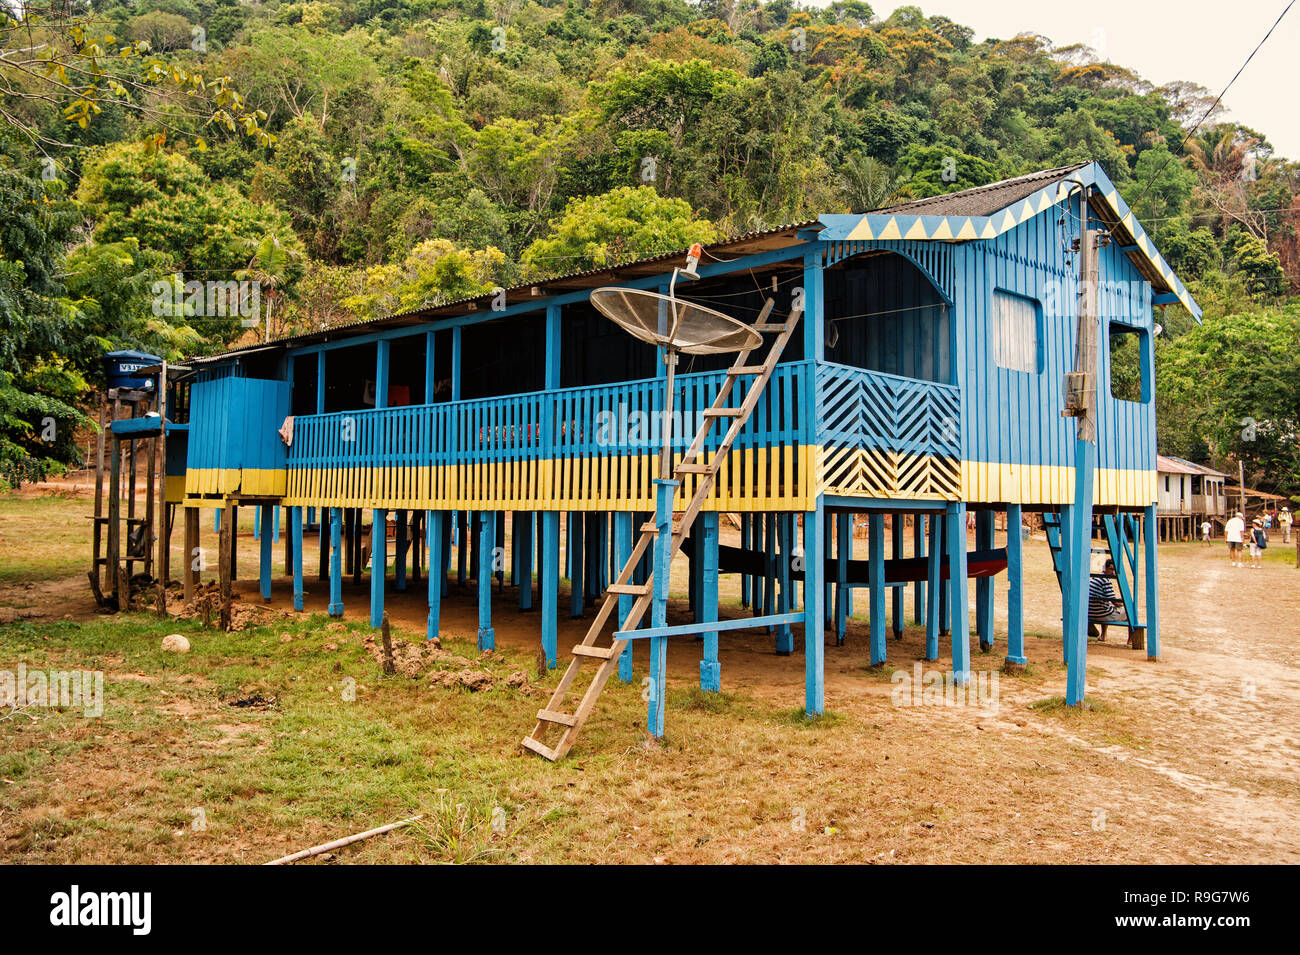 Boca de valeria, Brazil - December 03, 2015: hut on wooden piles in village in jungles on natural background. Poverty and dwelling concept. - Stock Image